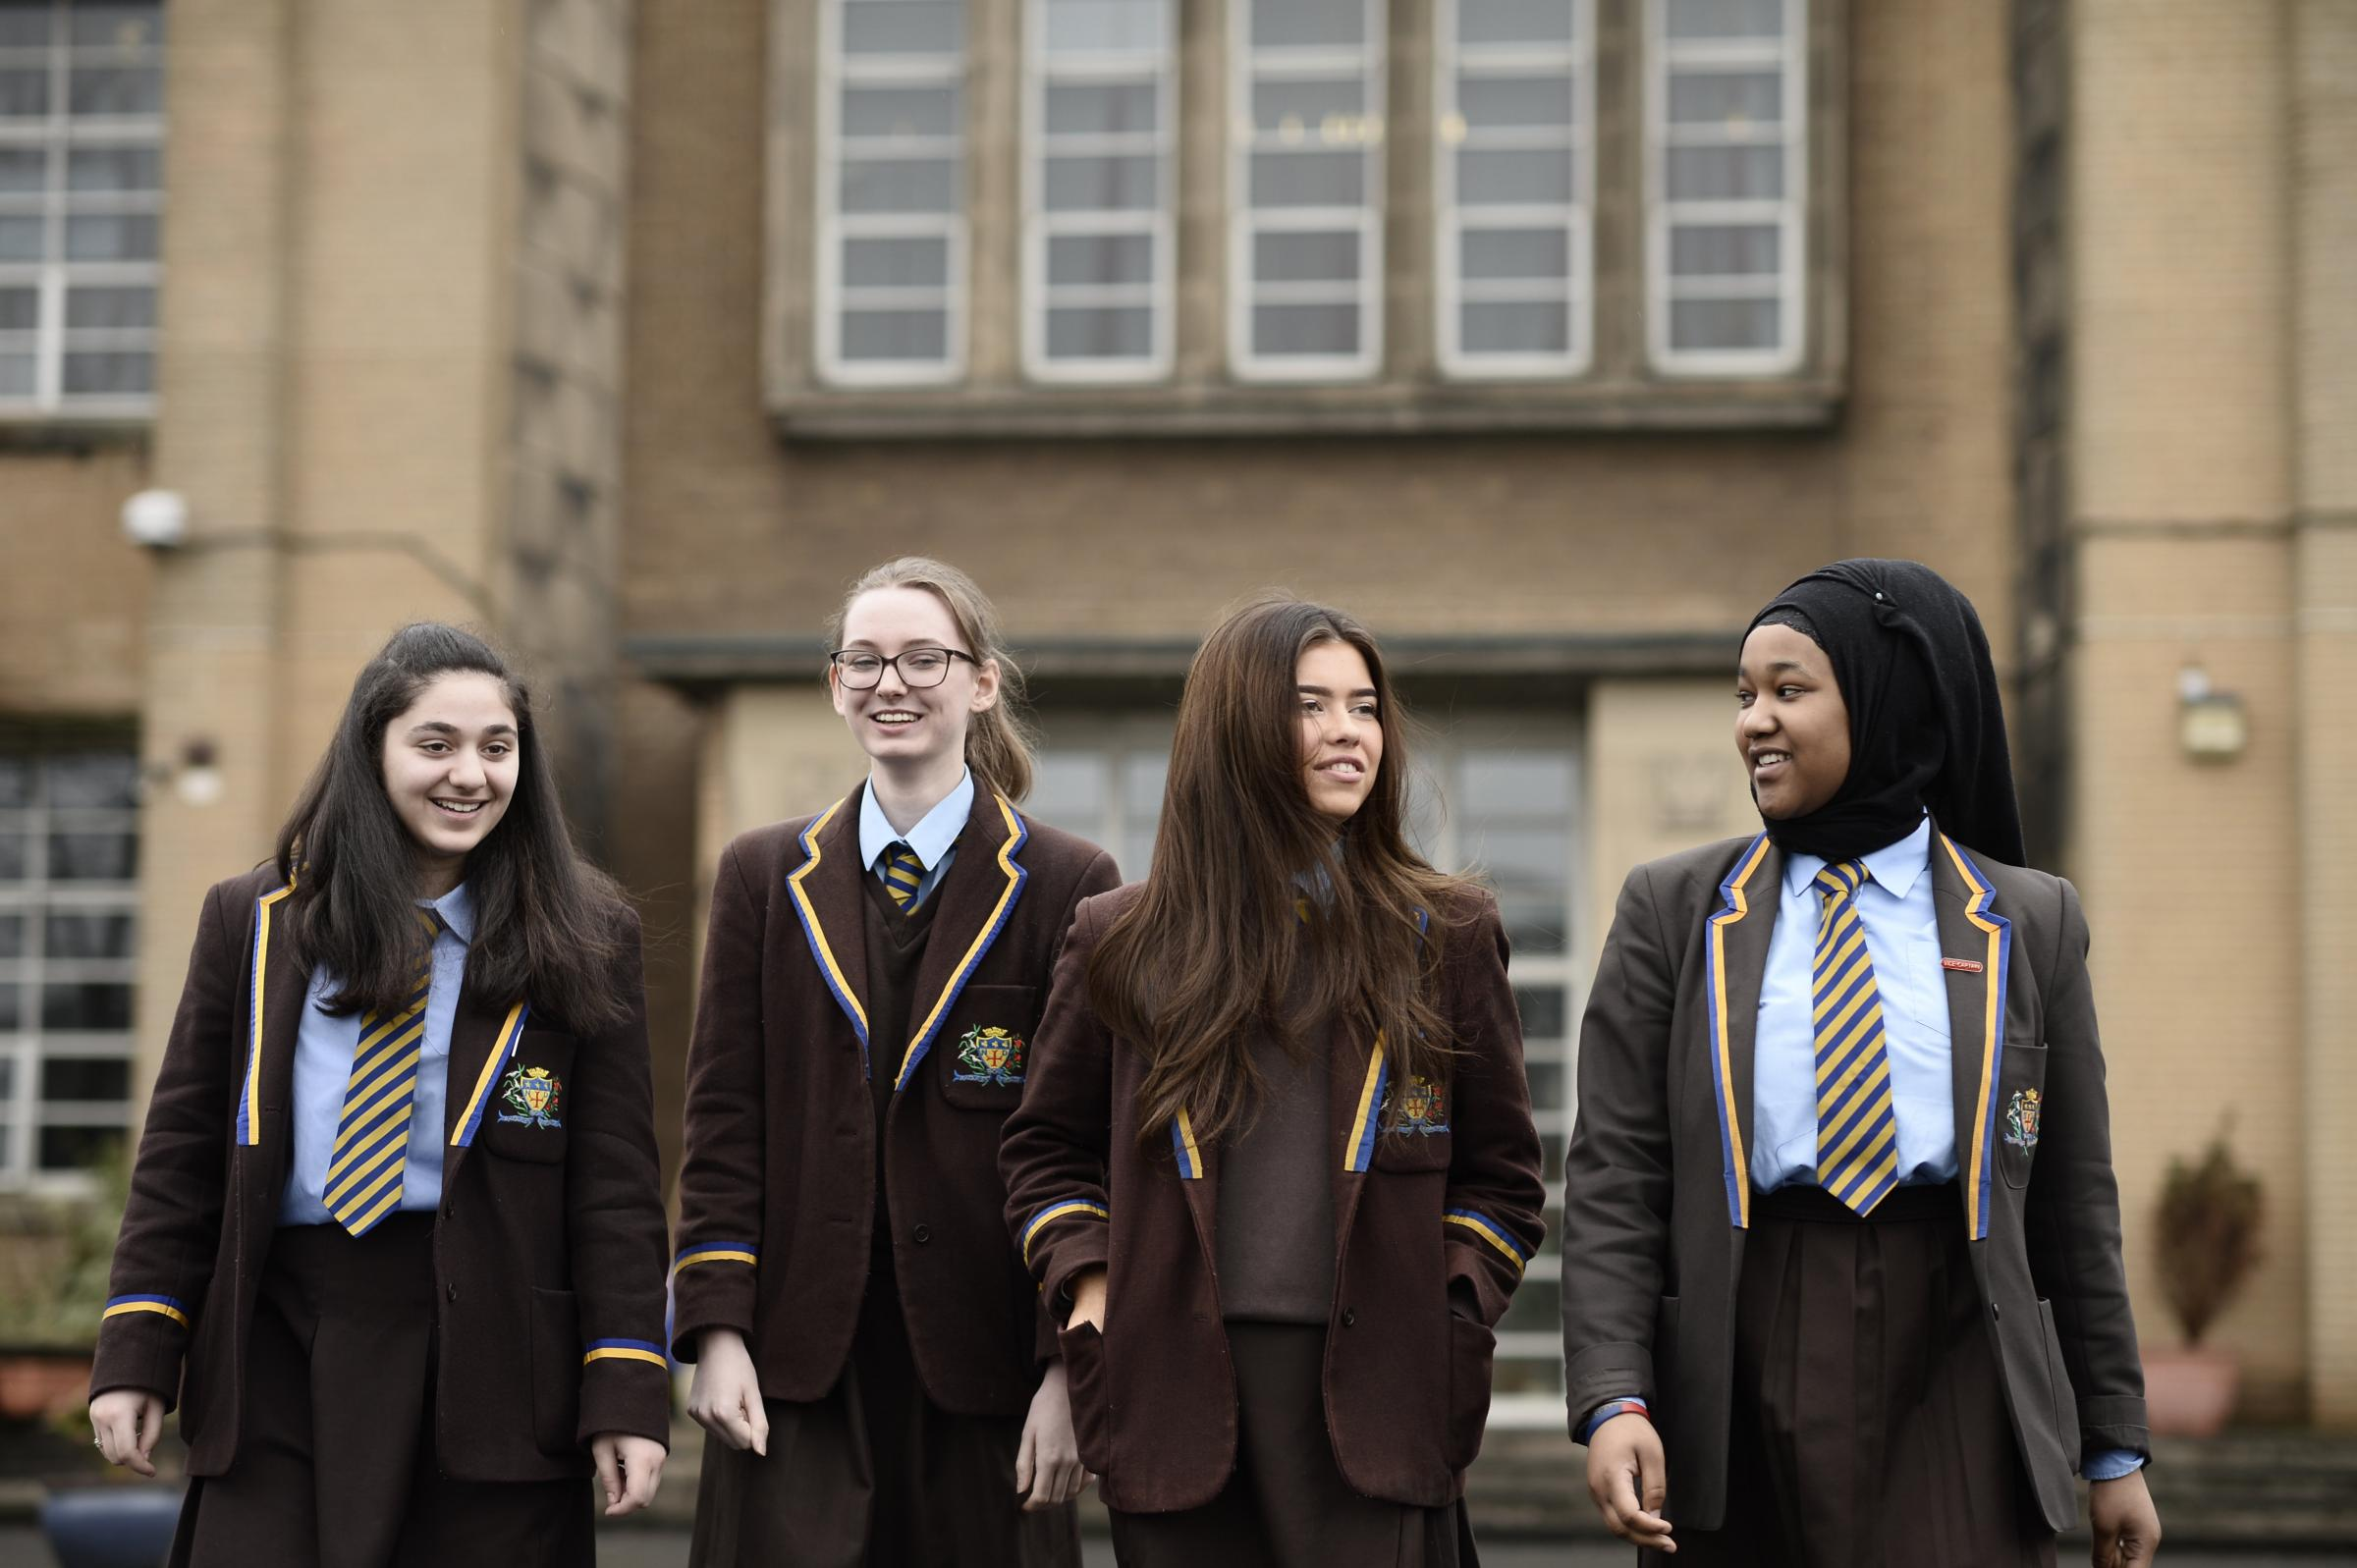 "All-Girls Education: Minimizing or Maximizing Gender Inequality?  - Notre Dame High School, a Catholic establishment founded by nuns in 1897, is Scotland's last remaining single-sex state school. However, the school roll is not at capacity, and there is a group of people campaigning for it to include boys because they feel that all-girls education is ""discriminatory, outdated and unfair."" Many of the girls at Notre Dame high school firmly their single-sex education, saying that their all-girls schools allow them to take science classes without feeling intimidated, boost their confidence, and helps girls maintain more positive attitudes towards body image.  In the context of the current #MeToo campaign and the gender pay gap, there is substantial disagreement as to whether single-sex or co-educational schools are best for girls."